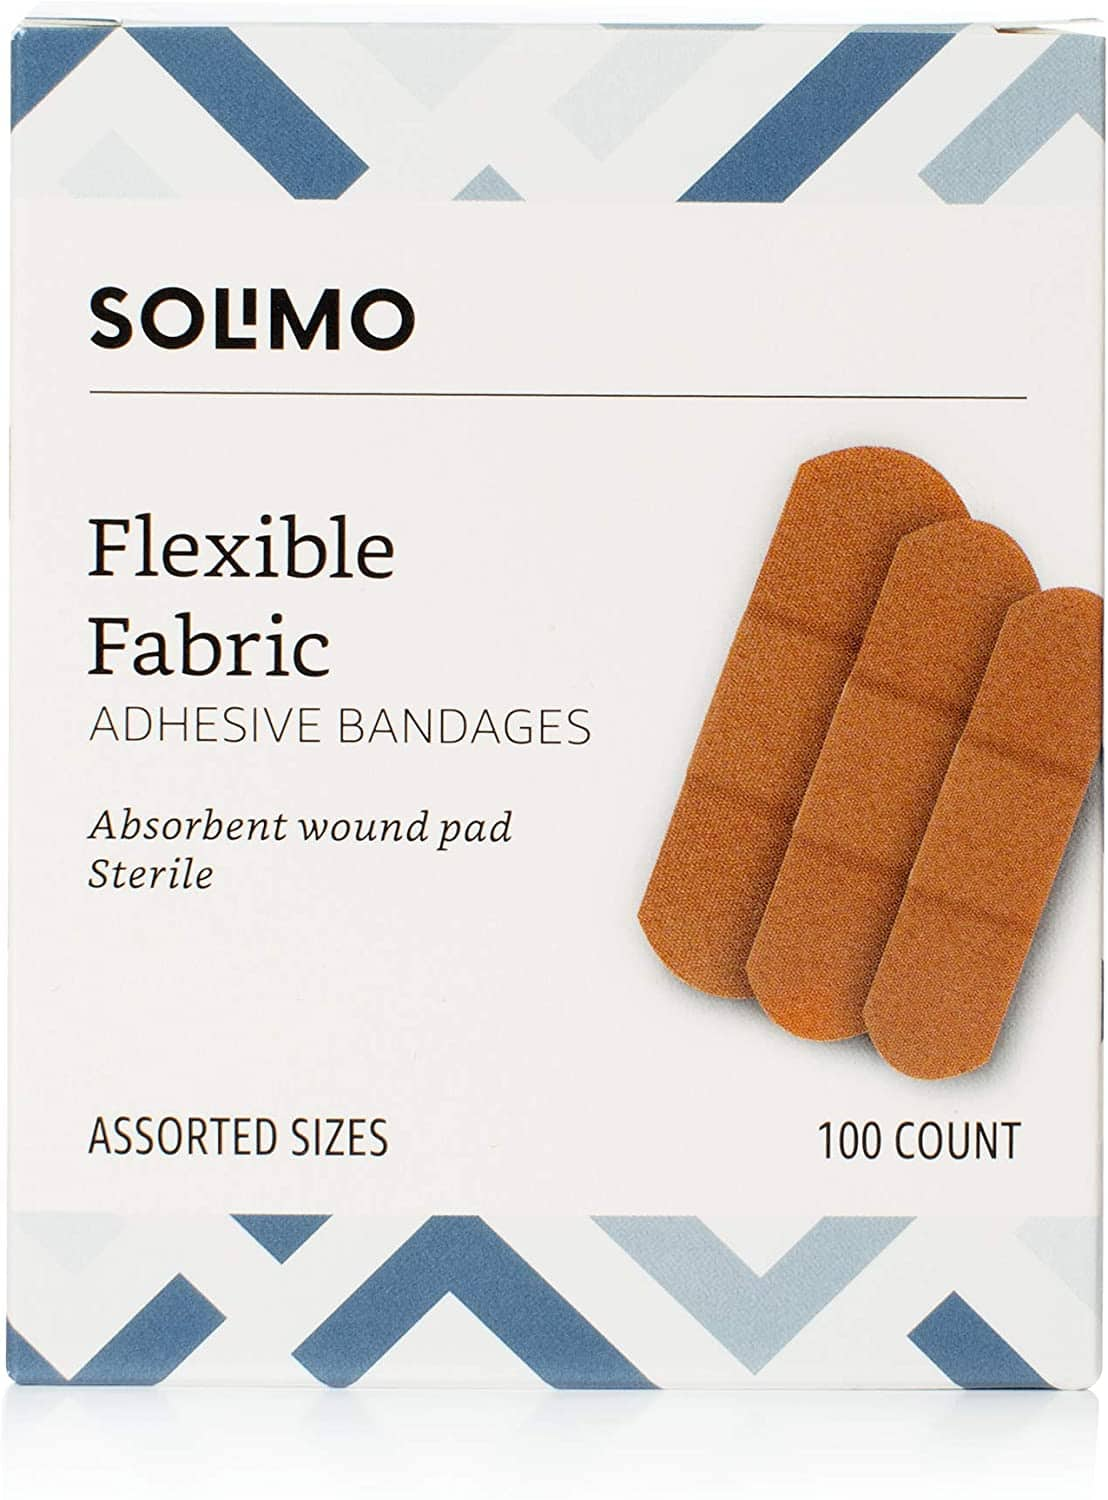 100-Ct Amazon Brand Solimo Flexible Fabric Adhesive Bandages (Assorted Sizes) $3.90 + Free Shipping w/ Prime or on $25+